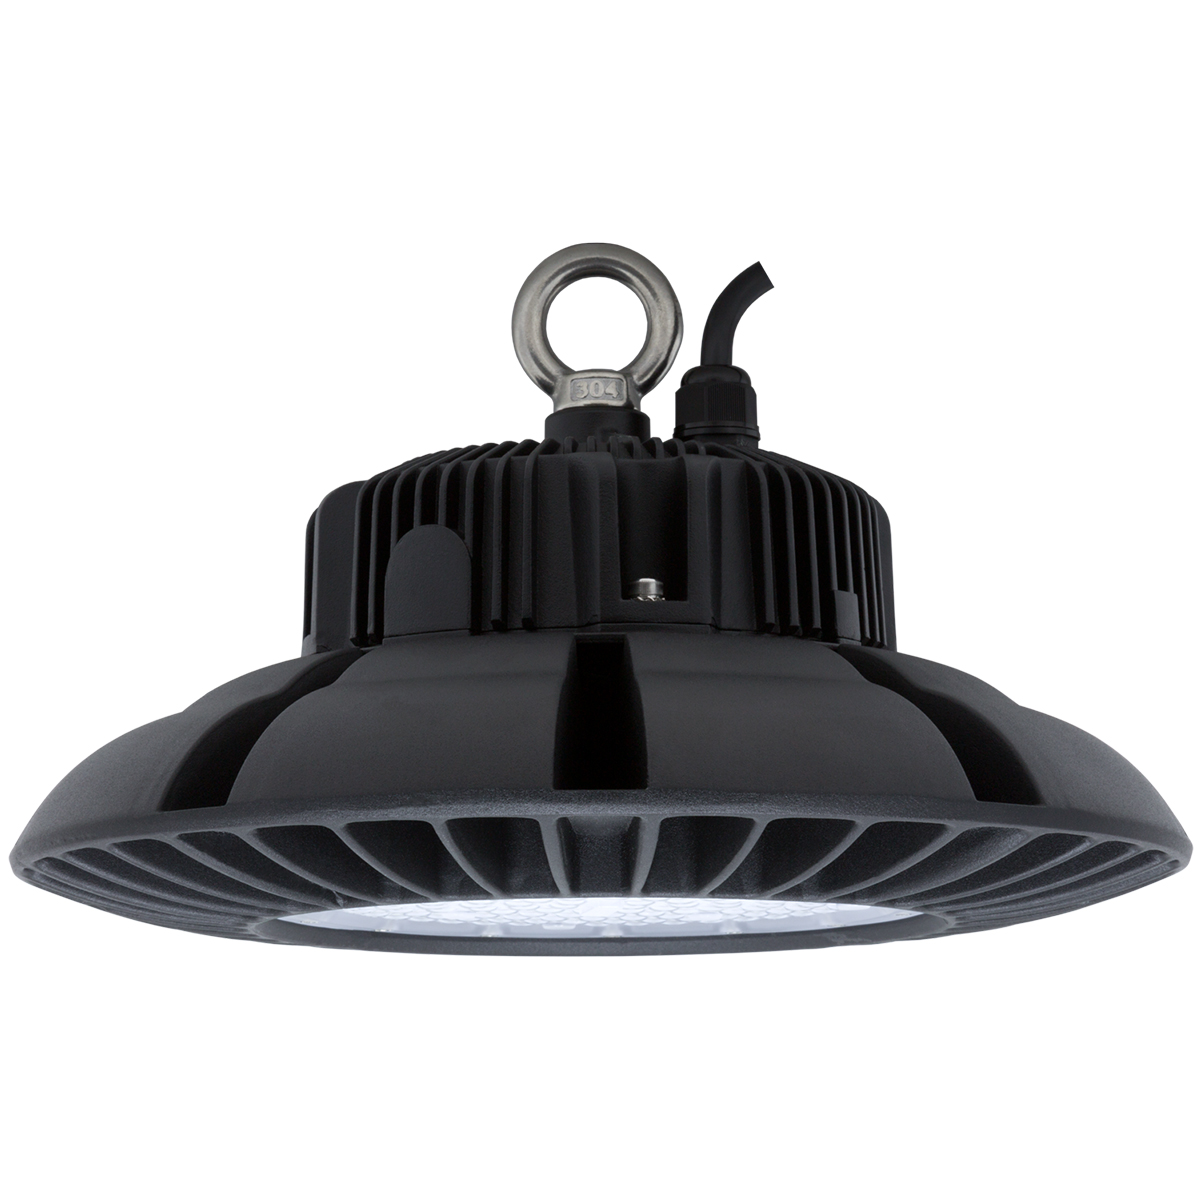 LED High Bay Lights – Model HB